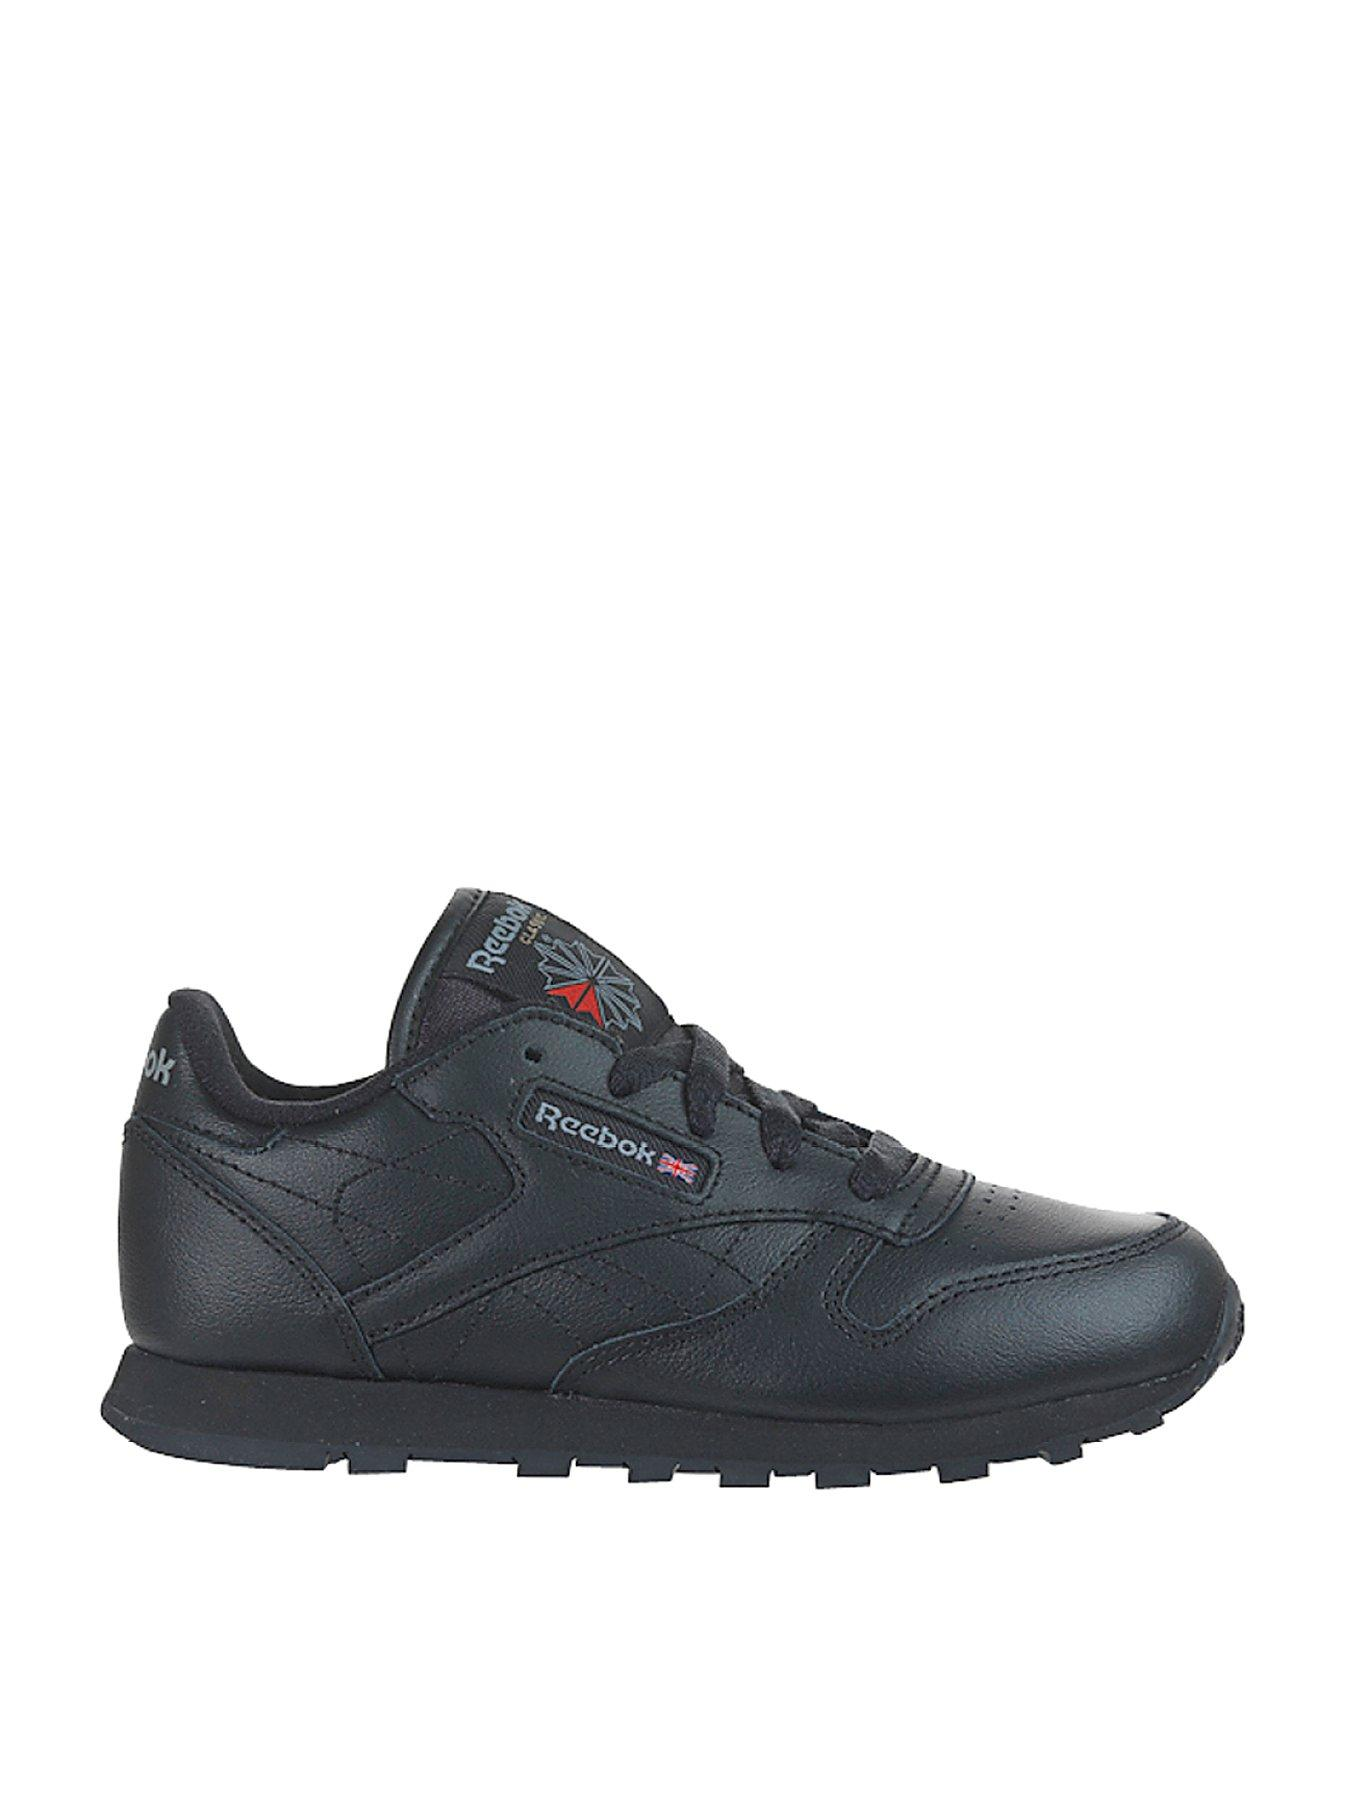 b4eaeb2f225ce5 ladies black reebok trainers cheap   OFF50% The Largest Catalog ...